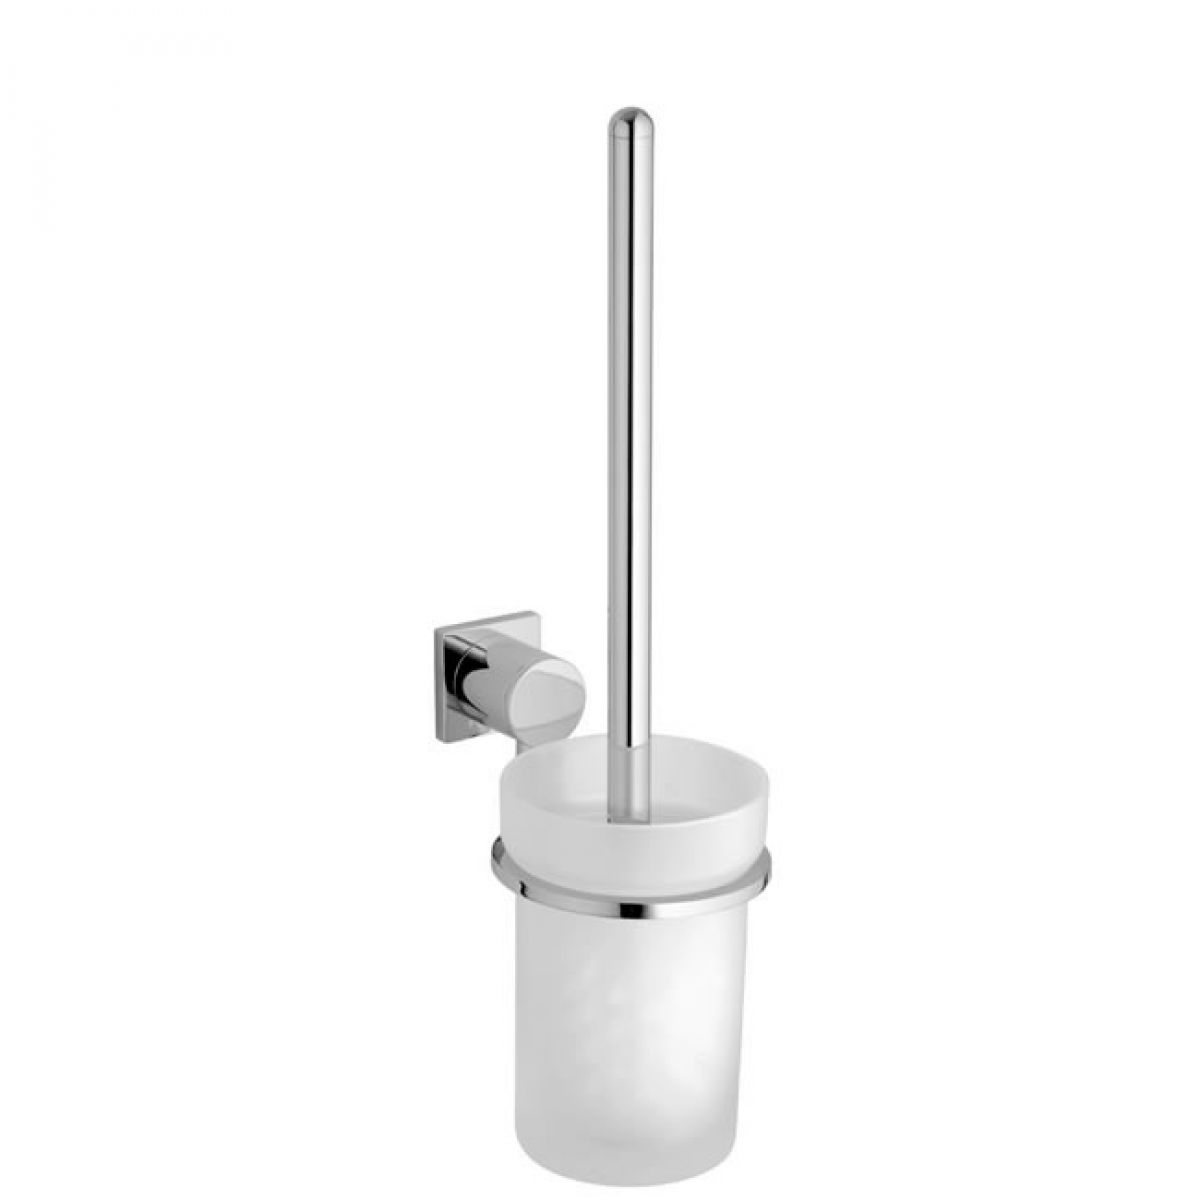 grohe allure toilet brush set uk bathrooms. Black Bedroom Furniture Sets. Home Design Ideas